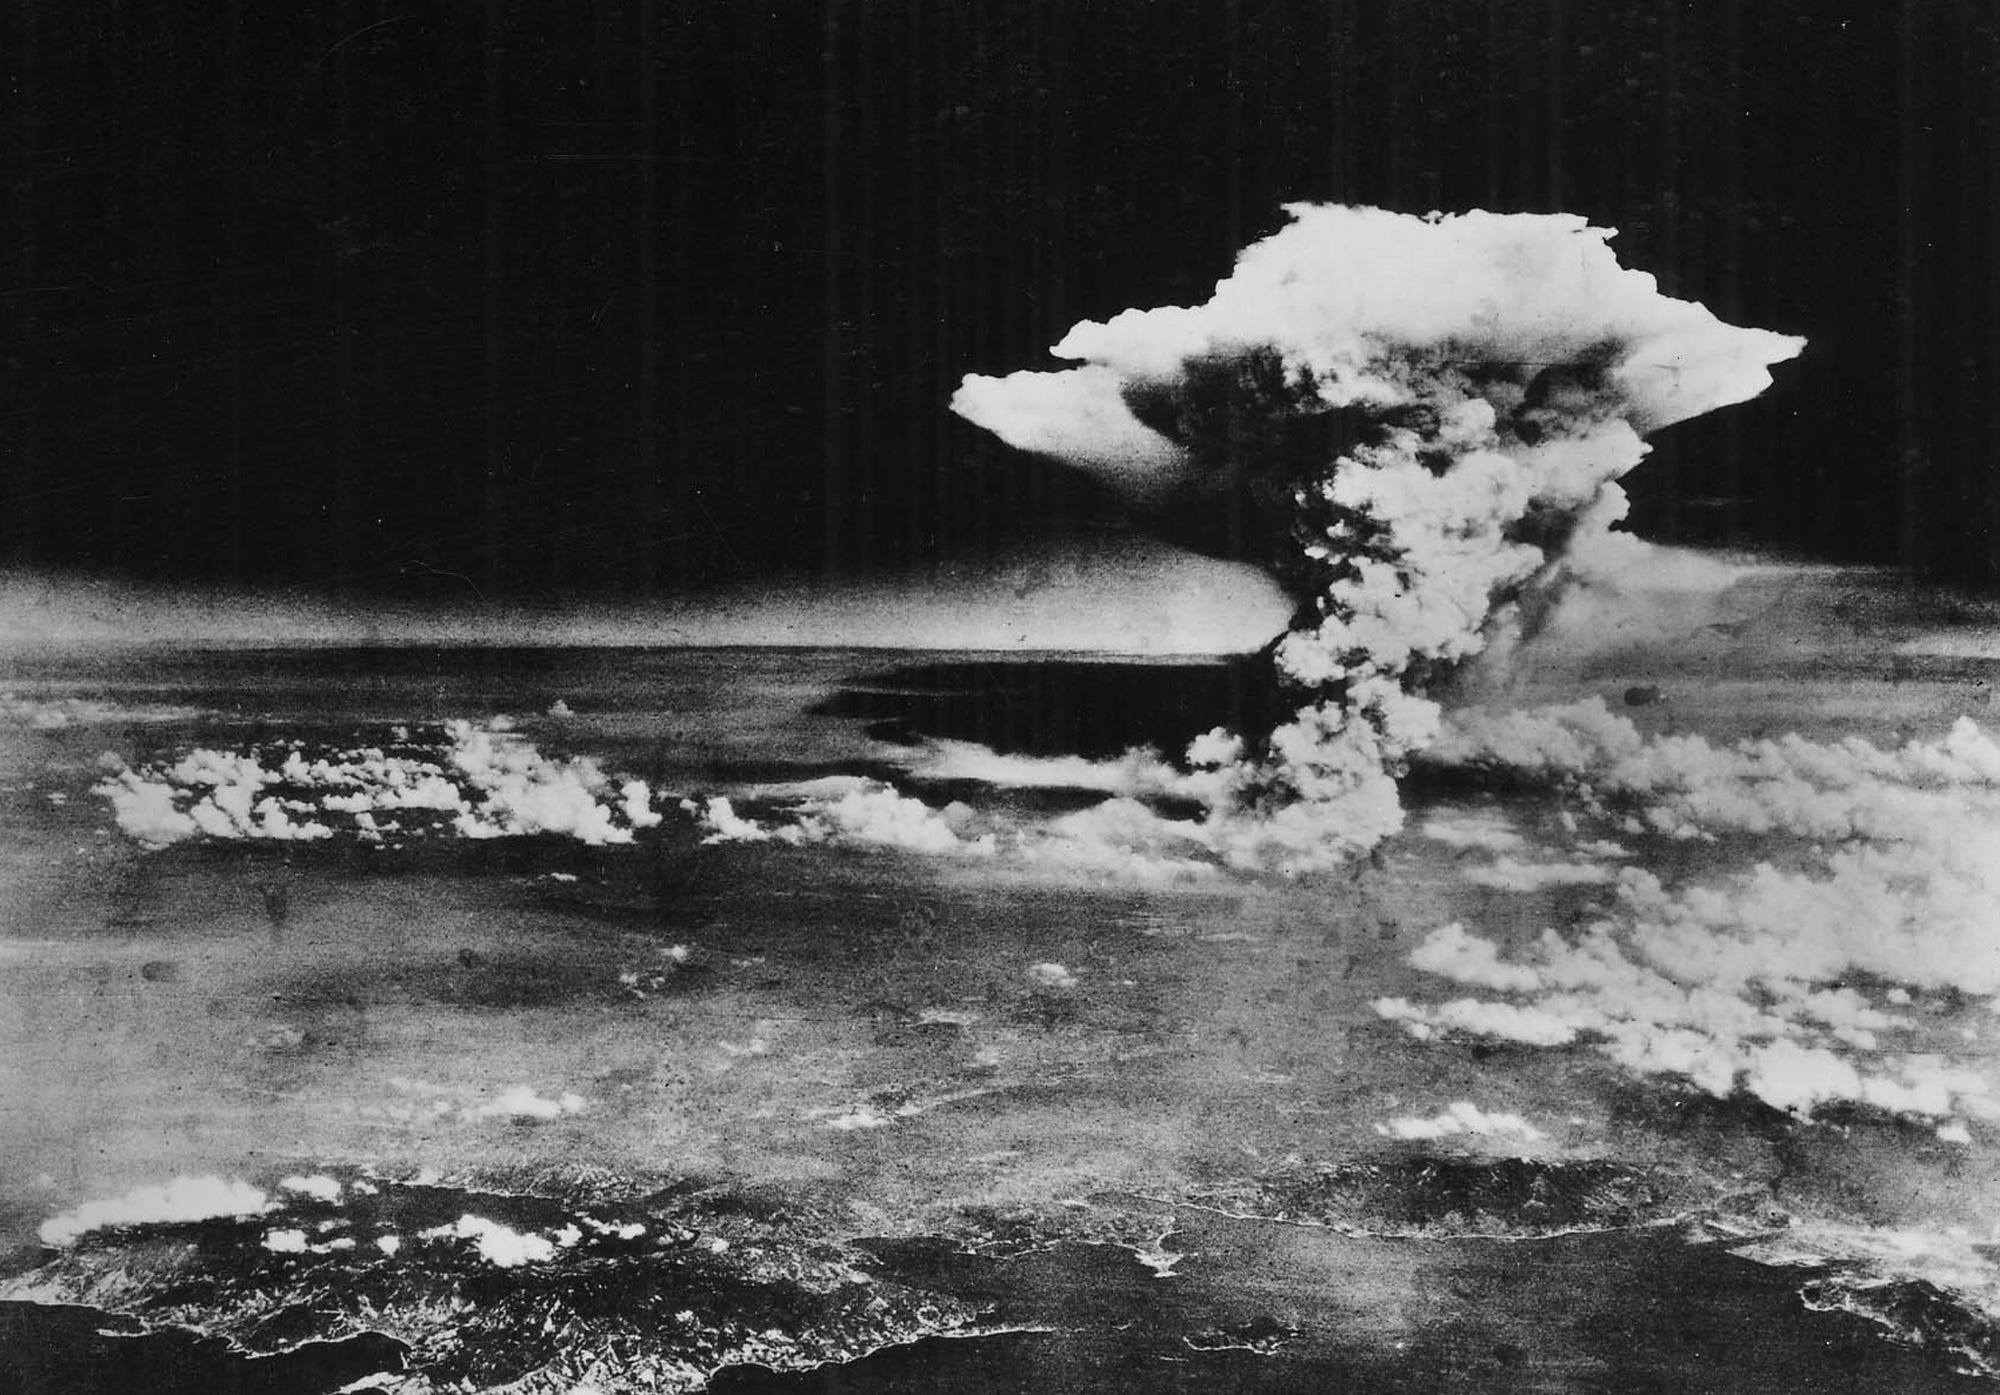 Hiroshima: What damage looked like in Japan